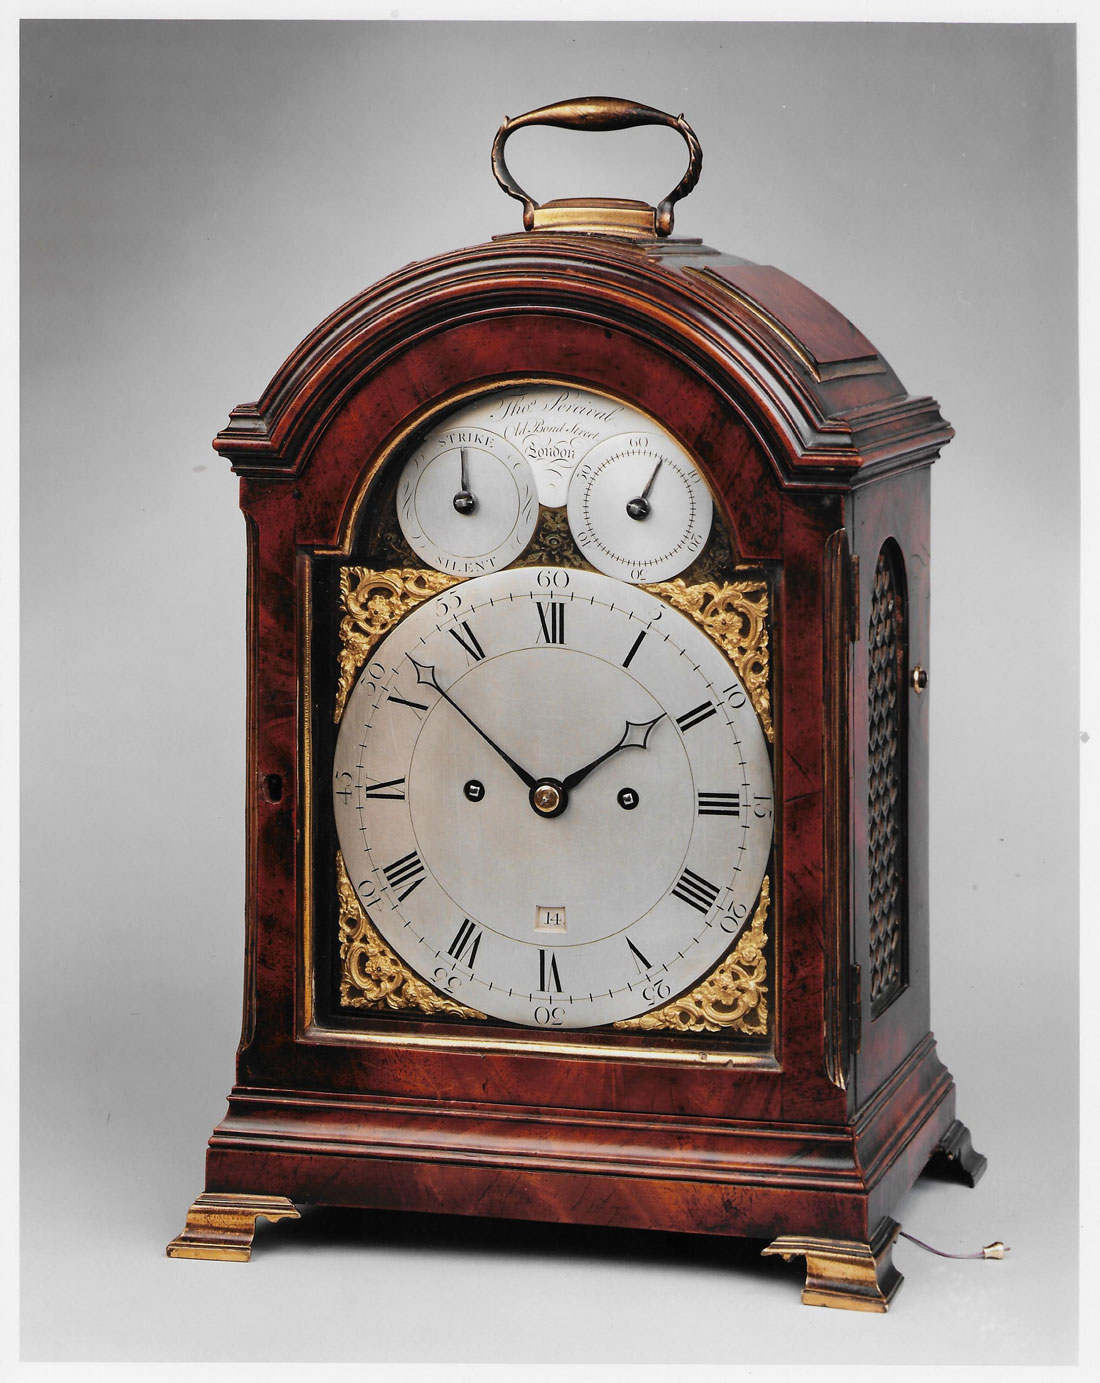 THOMAS PERCIVAL, OLD BOND STREET. A fine 3-pad mahogany bracket clock by this excellent maker.